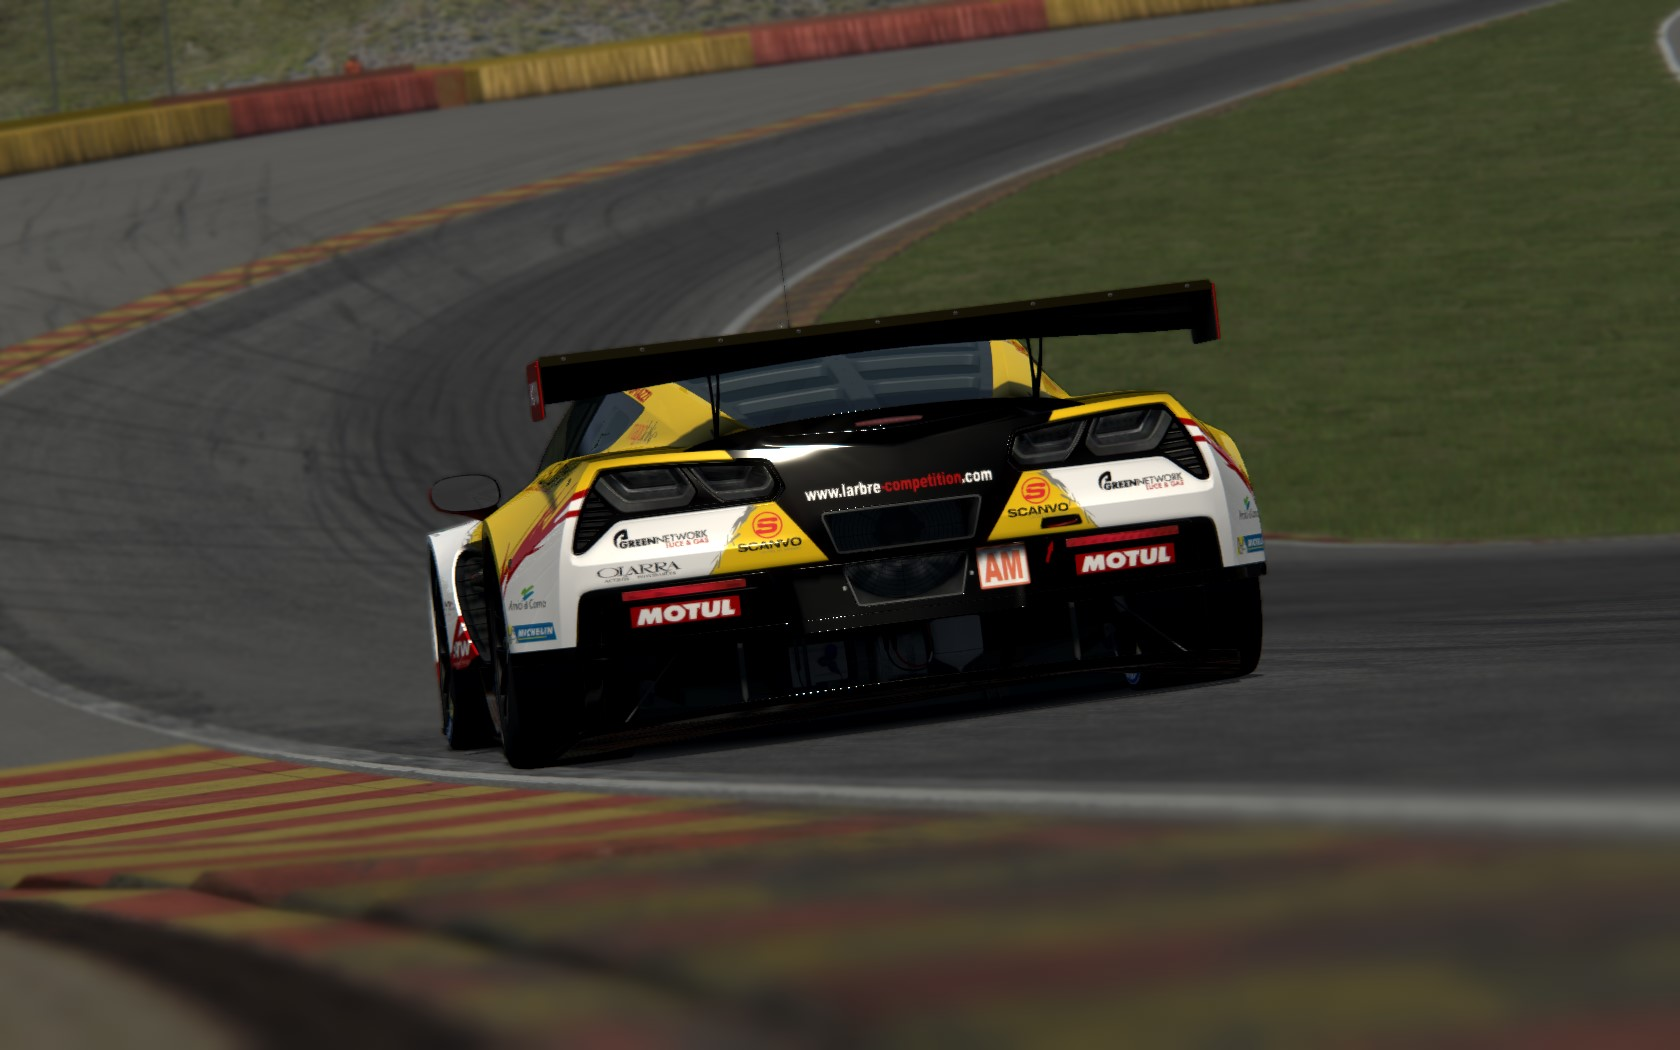 screenshot_ks_corvettaau82.jpg